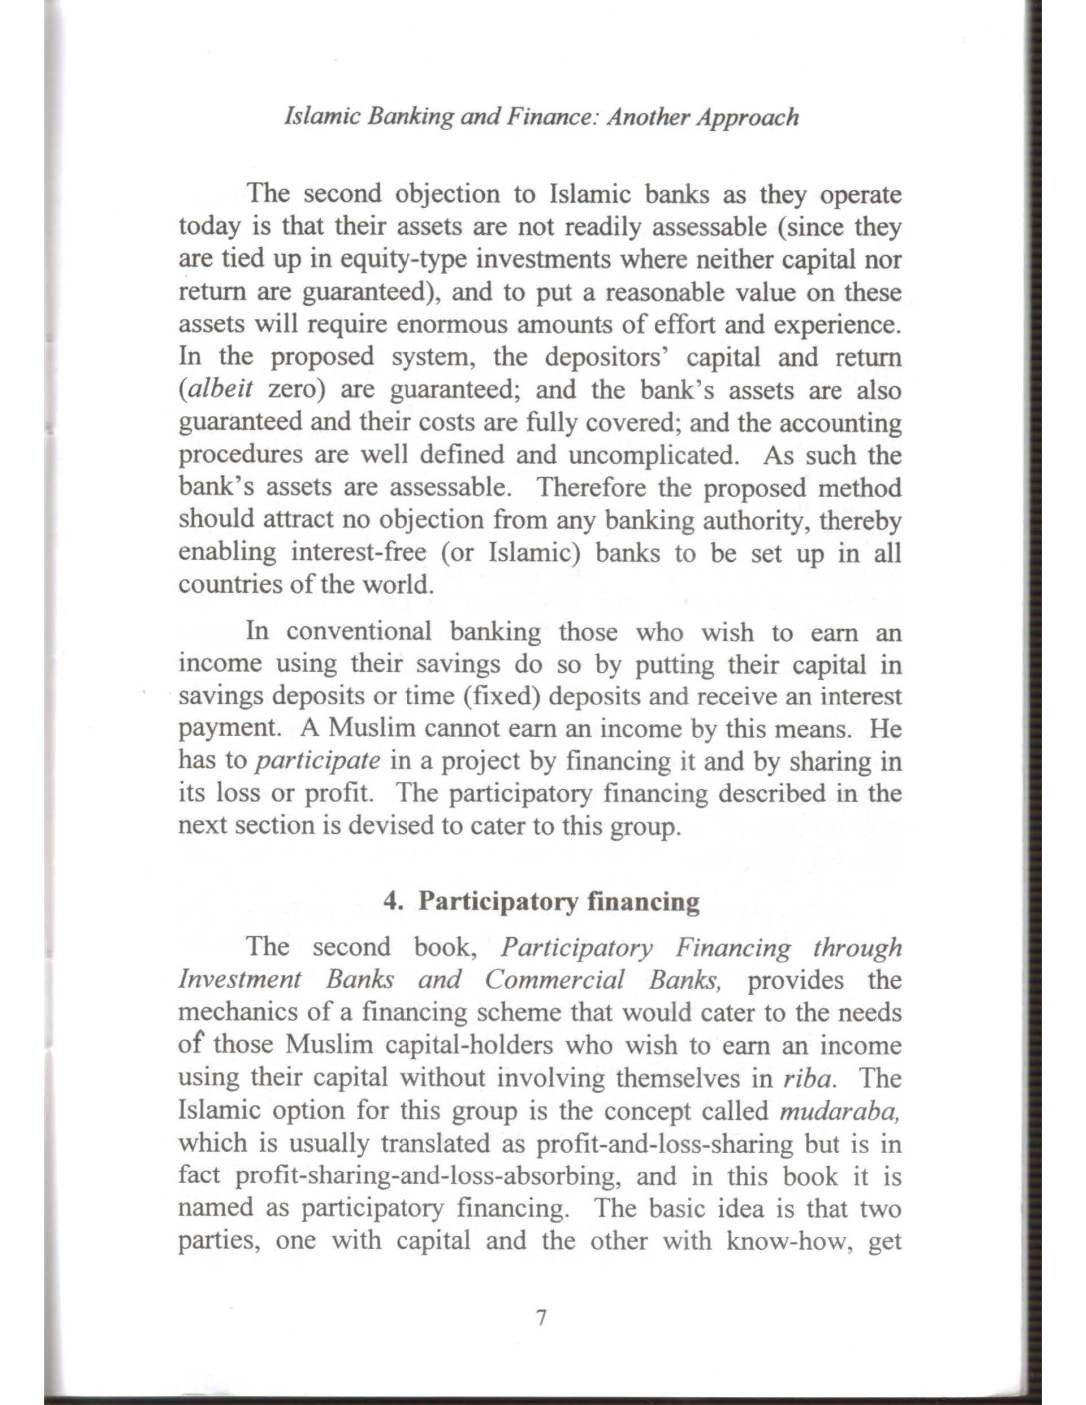 Islamic Banking and Finance - Another Approach_Page_08